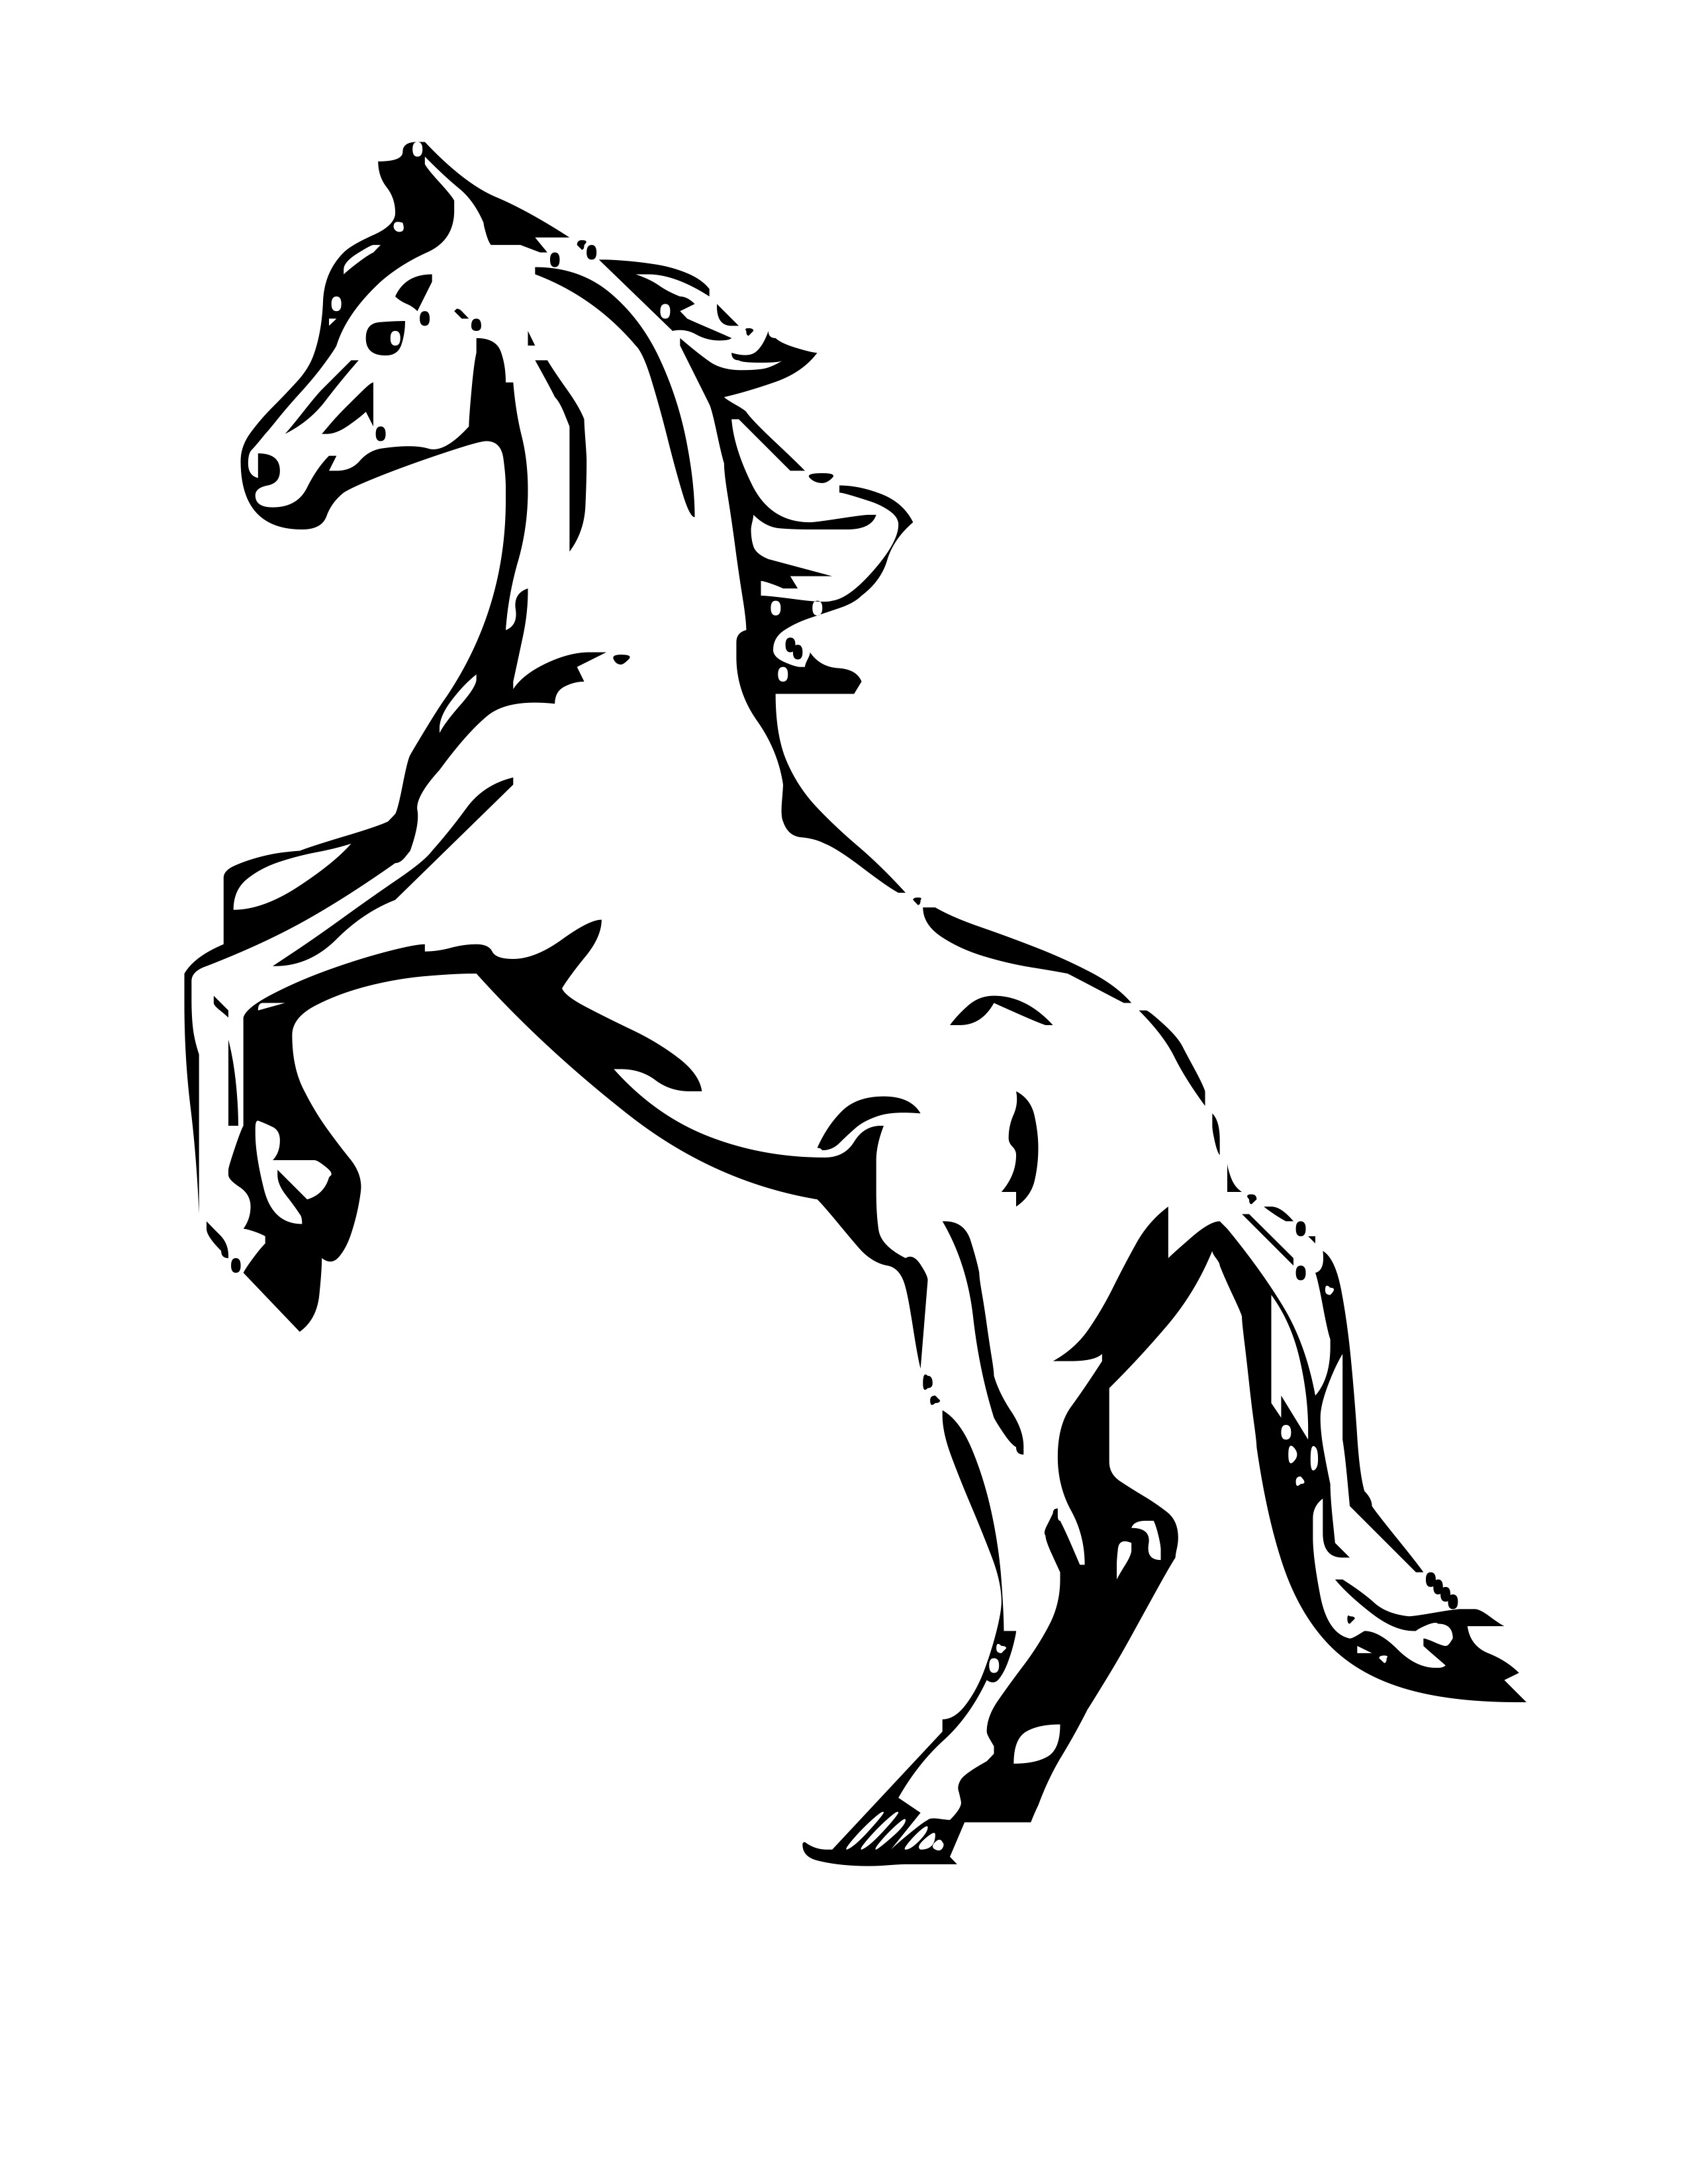 free printable coloring pages of horses 30 best horse coloring pages ideas weneedfun of printable pages coloring free horses